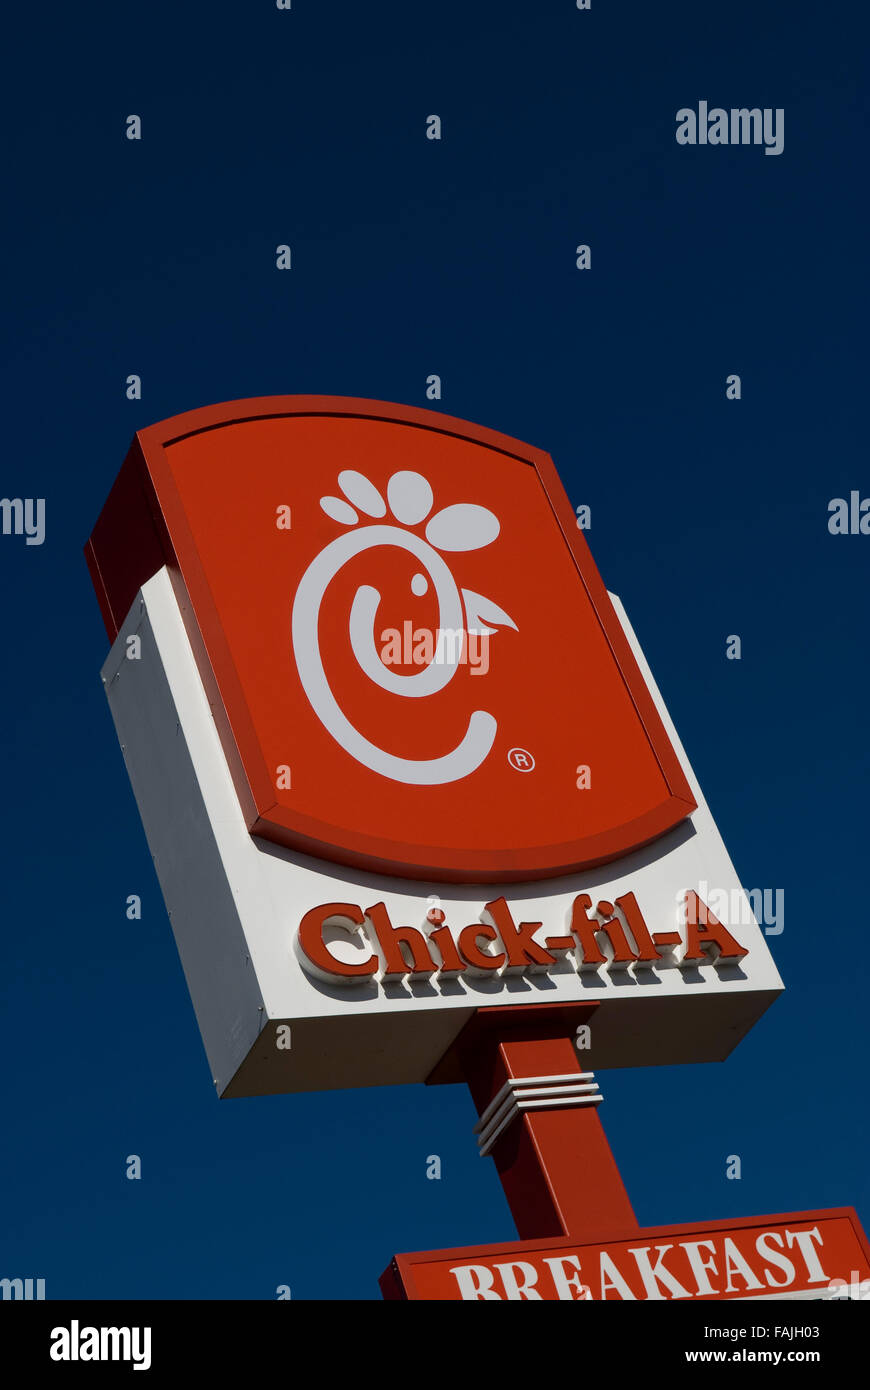 Chick fil a stock symbol gallery symbols and meanings chick fil a restaurant sign usa stock photo 92606867 alamy chick fil a restaurant sign usa buycottarizona Choice Image